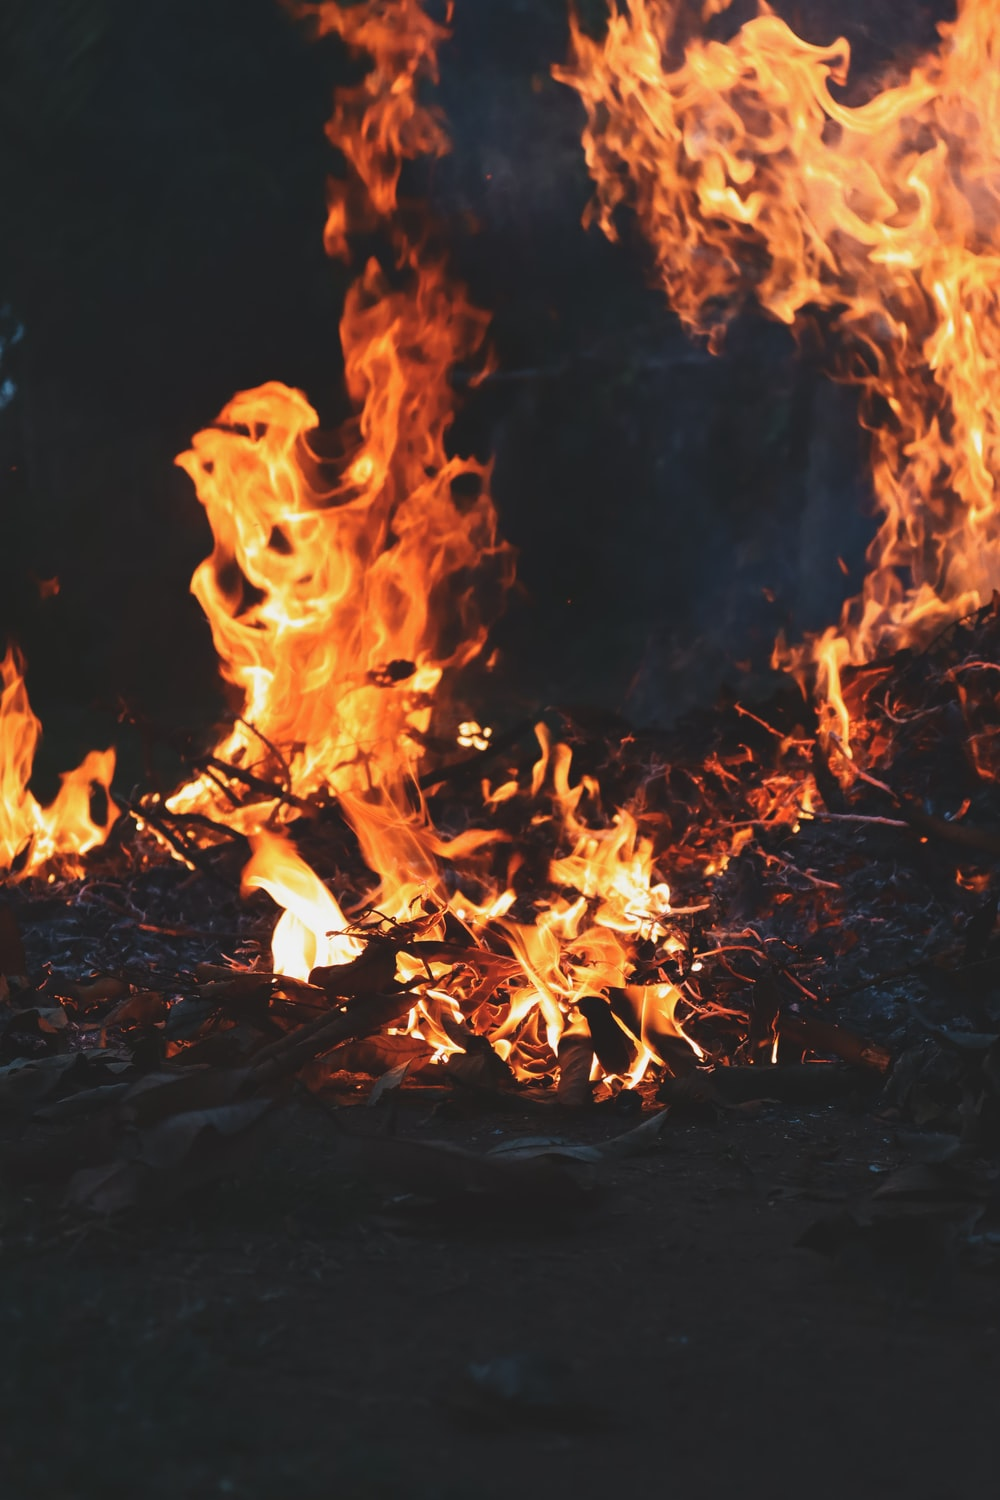 fire on ground during night time